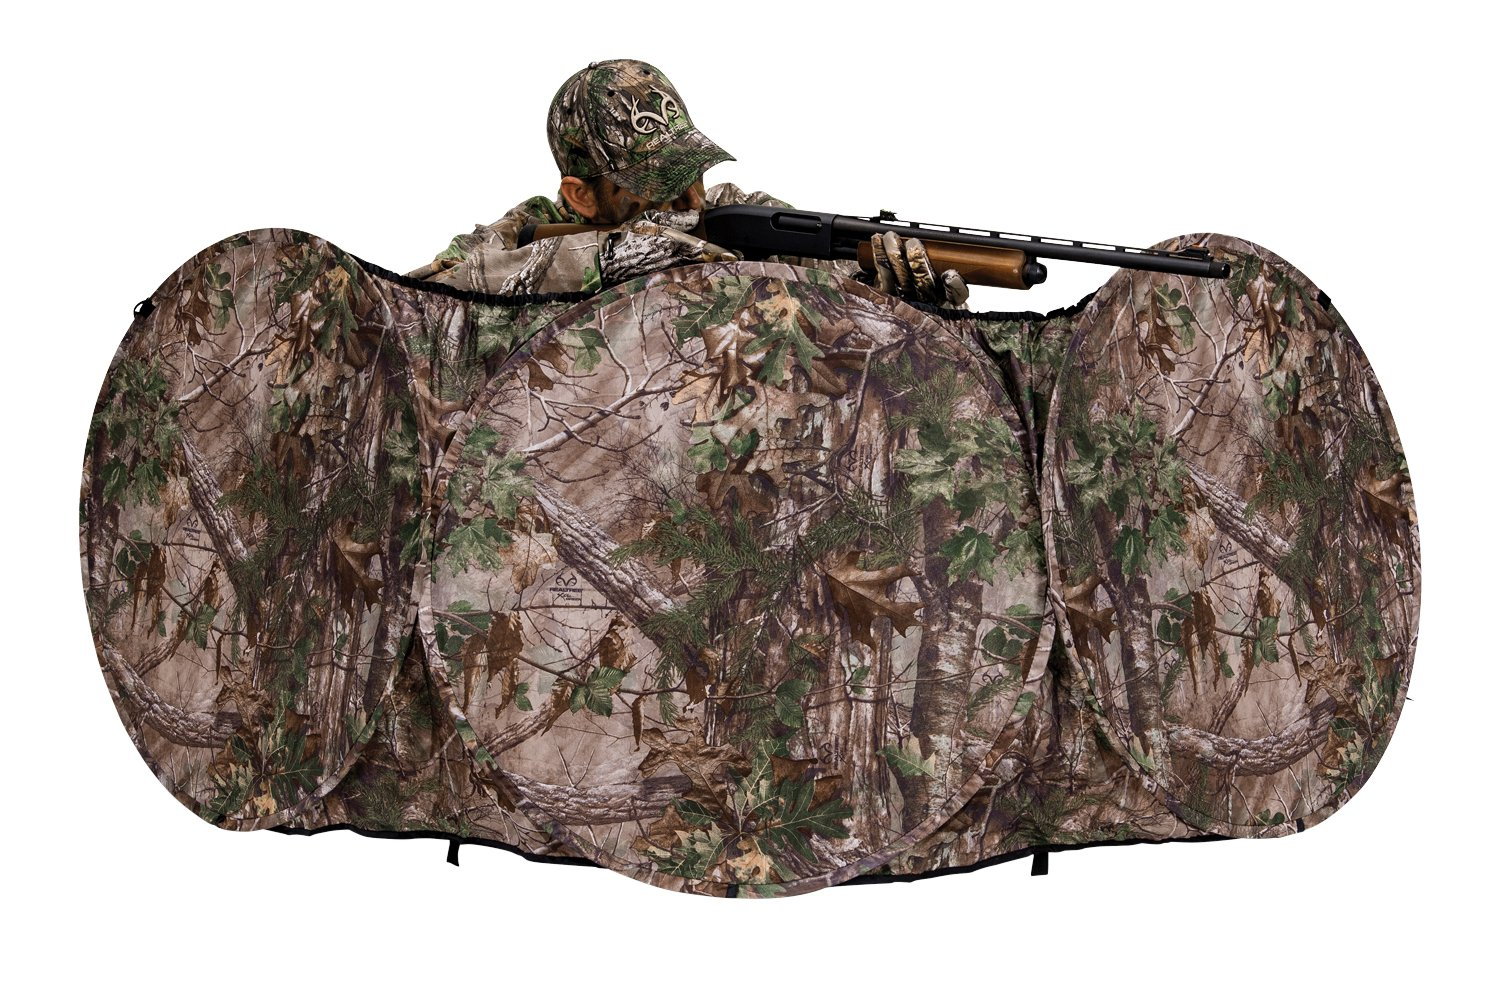 amazon com blind sports outdoors dp ameristep ground tent chair hunting blinds realtree